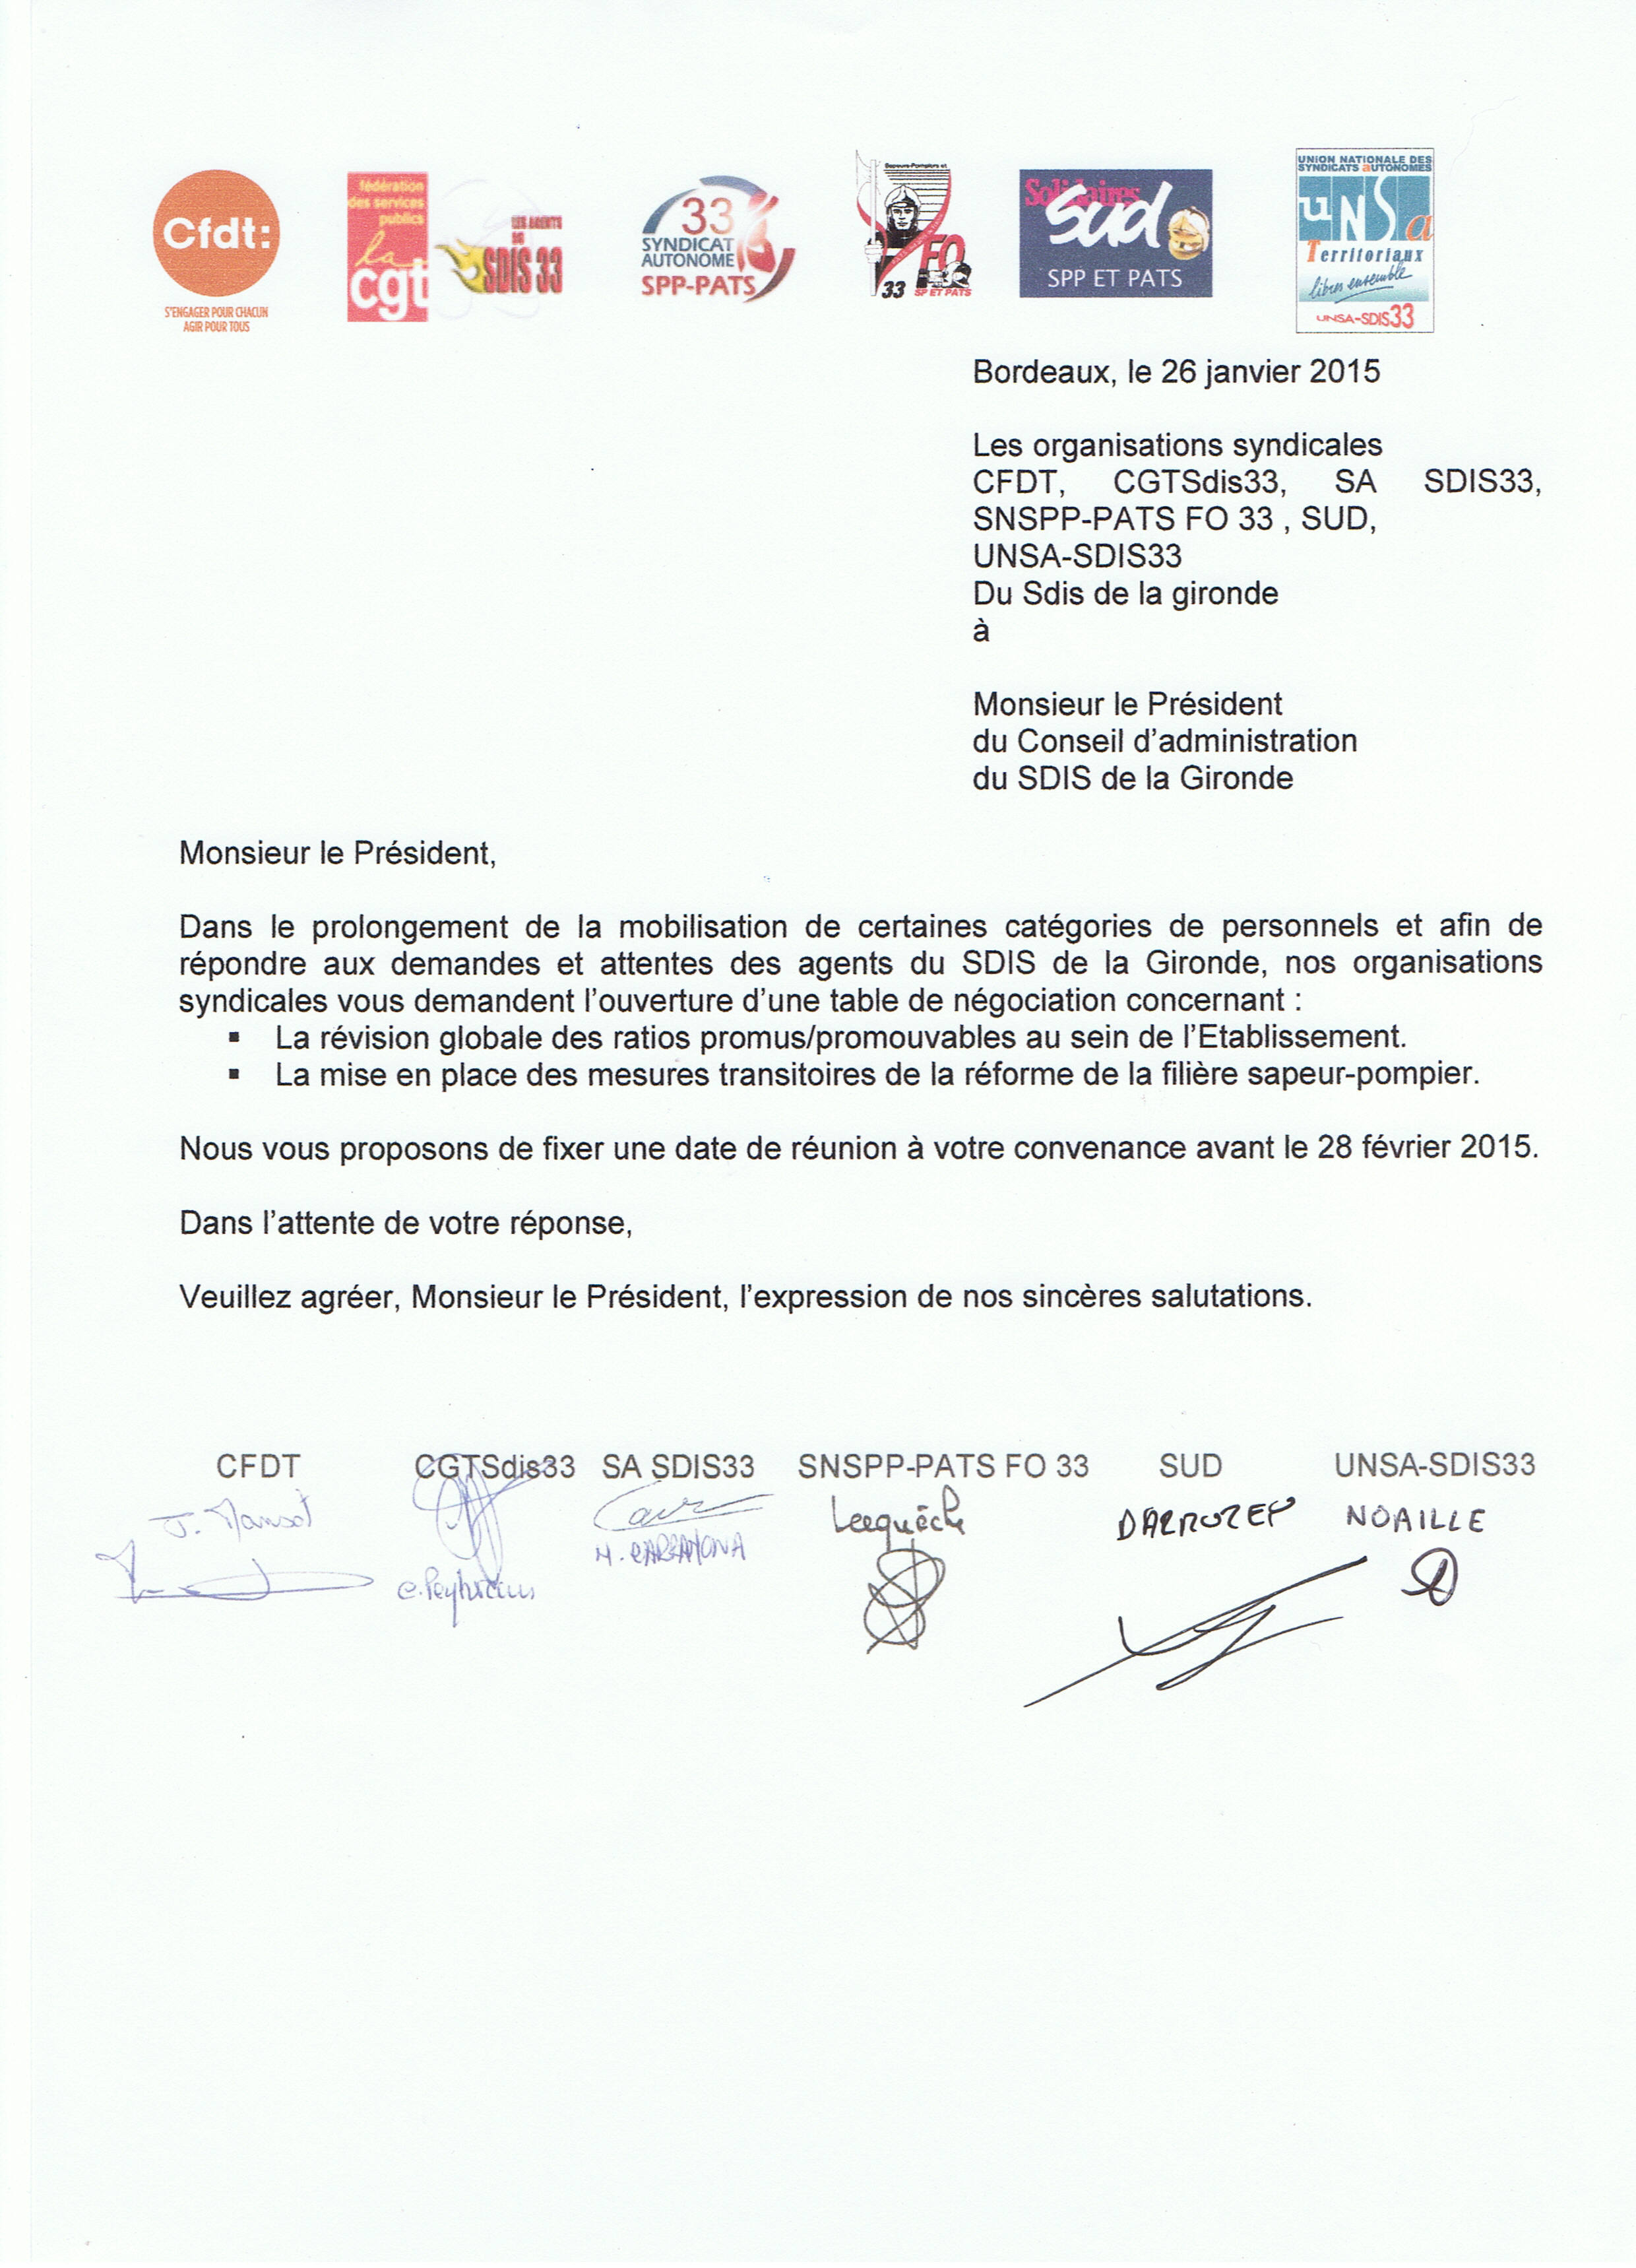 COURRIER PRESIDENT TABLE NEGO INTERSYNDICAL-RATIOS et REFORME SPP